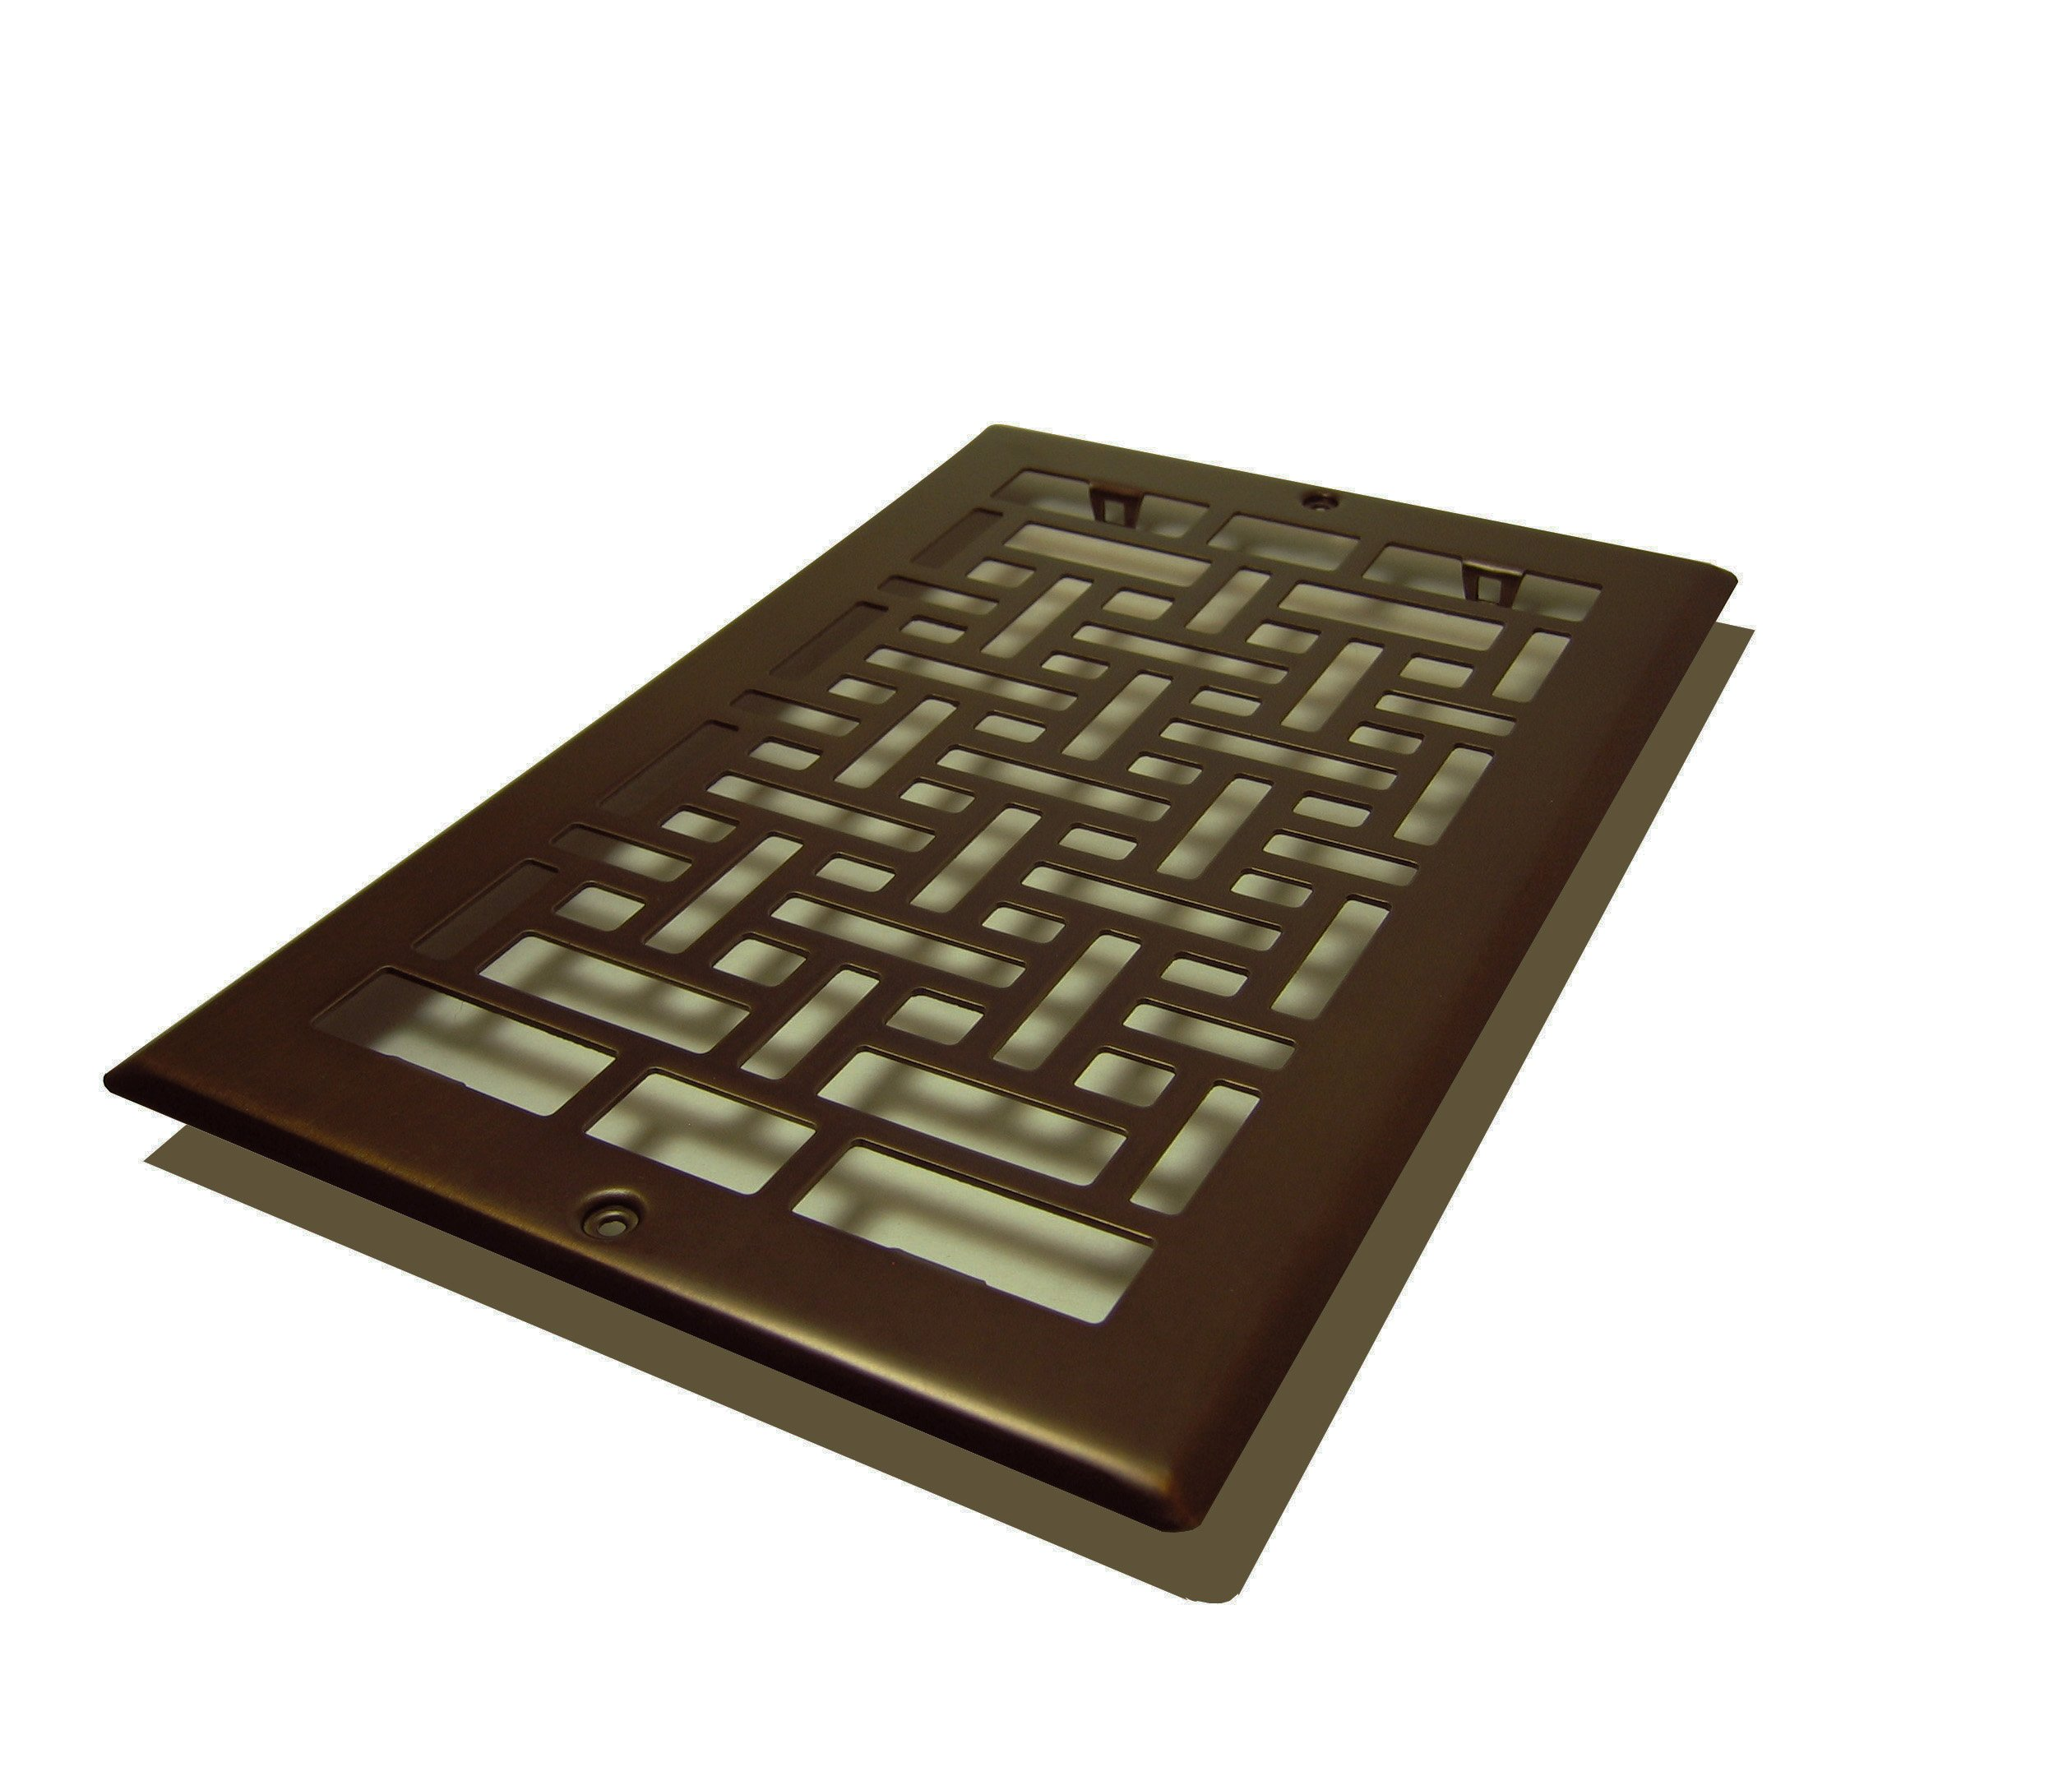 Decor Grates AJL610R-RB Oriental Return, 6-Inch by 10-Inch, Rubbed Bronze by Decor Grates